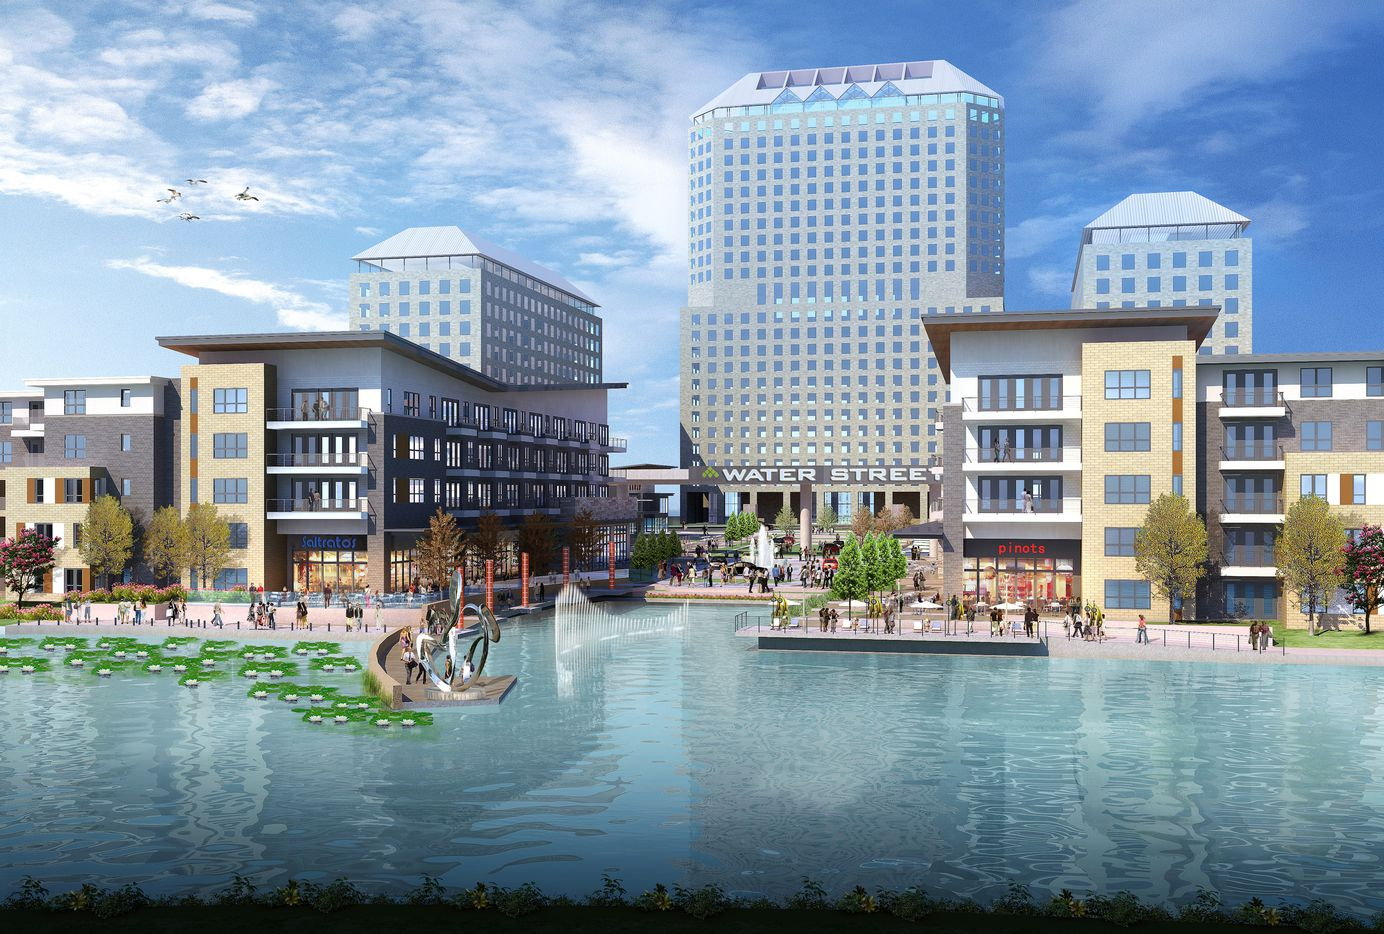 Gables Residential's Water Street project in Las Colinas will have more than 300 apartments and 60,000 square feet of retail.